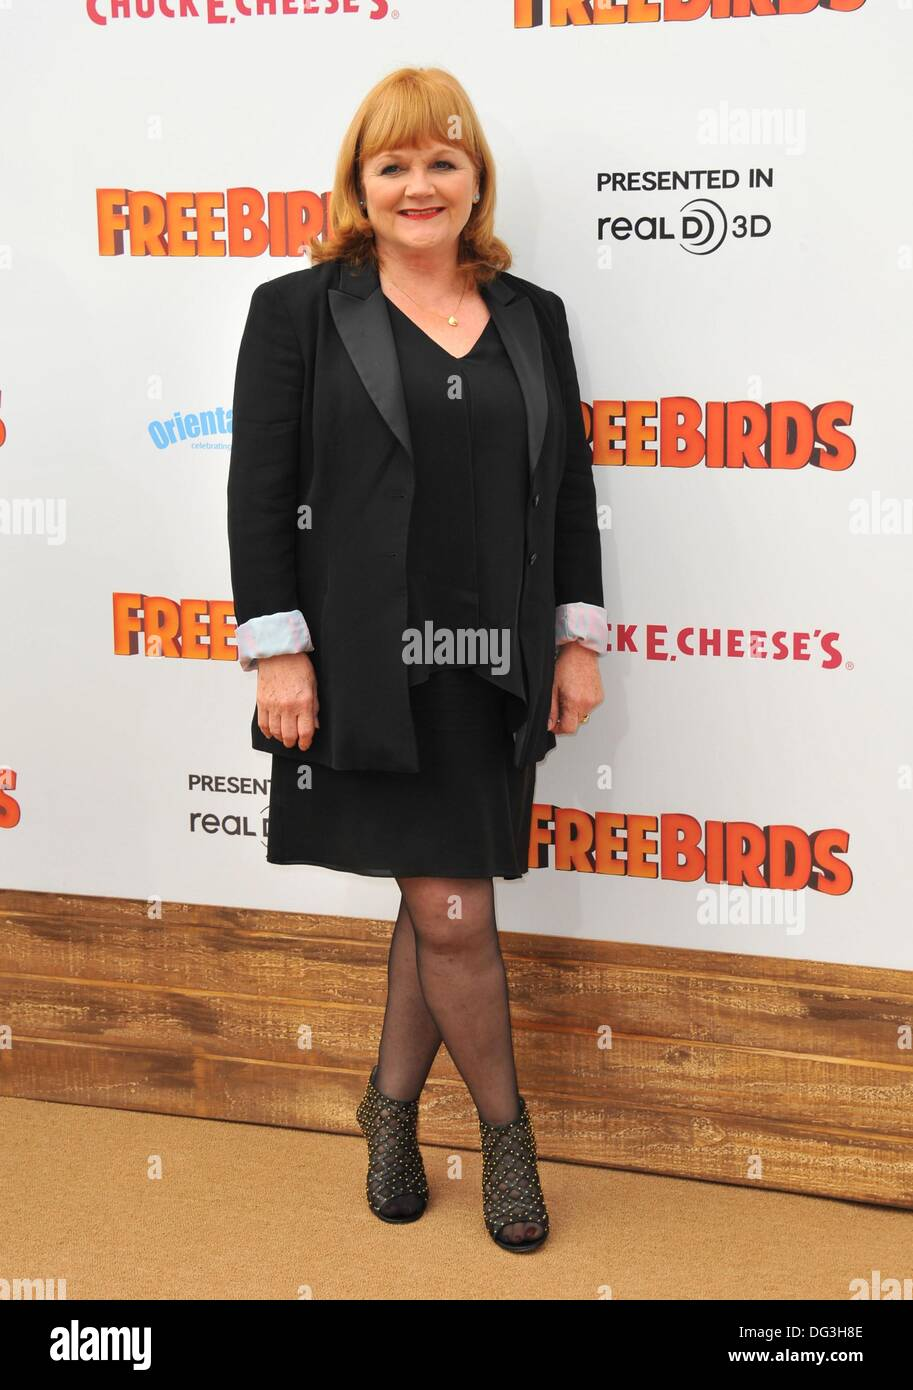 Los Angeles, CA, USA. 13th Oct, 2013. Lesley Nicol at arrivals for FREE BIRDS Premiere, Regency Village Theatre in Westwood, Los Angeles, CA October 13, 2013. Credit:  Dee Cercone/Everett Collection/Alamy Live News - Stock Image